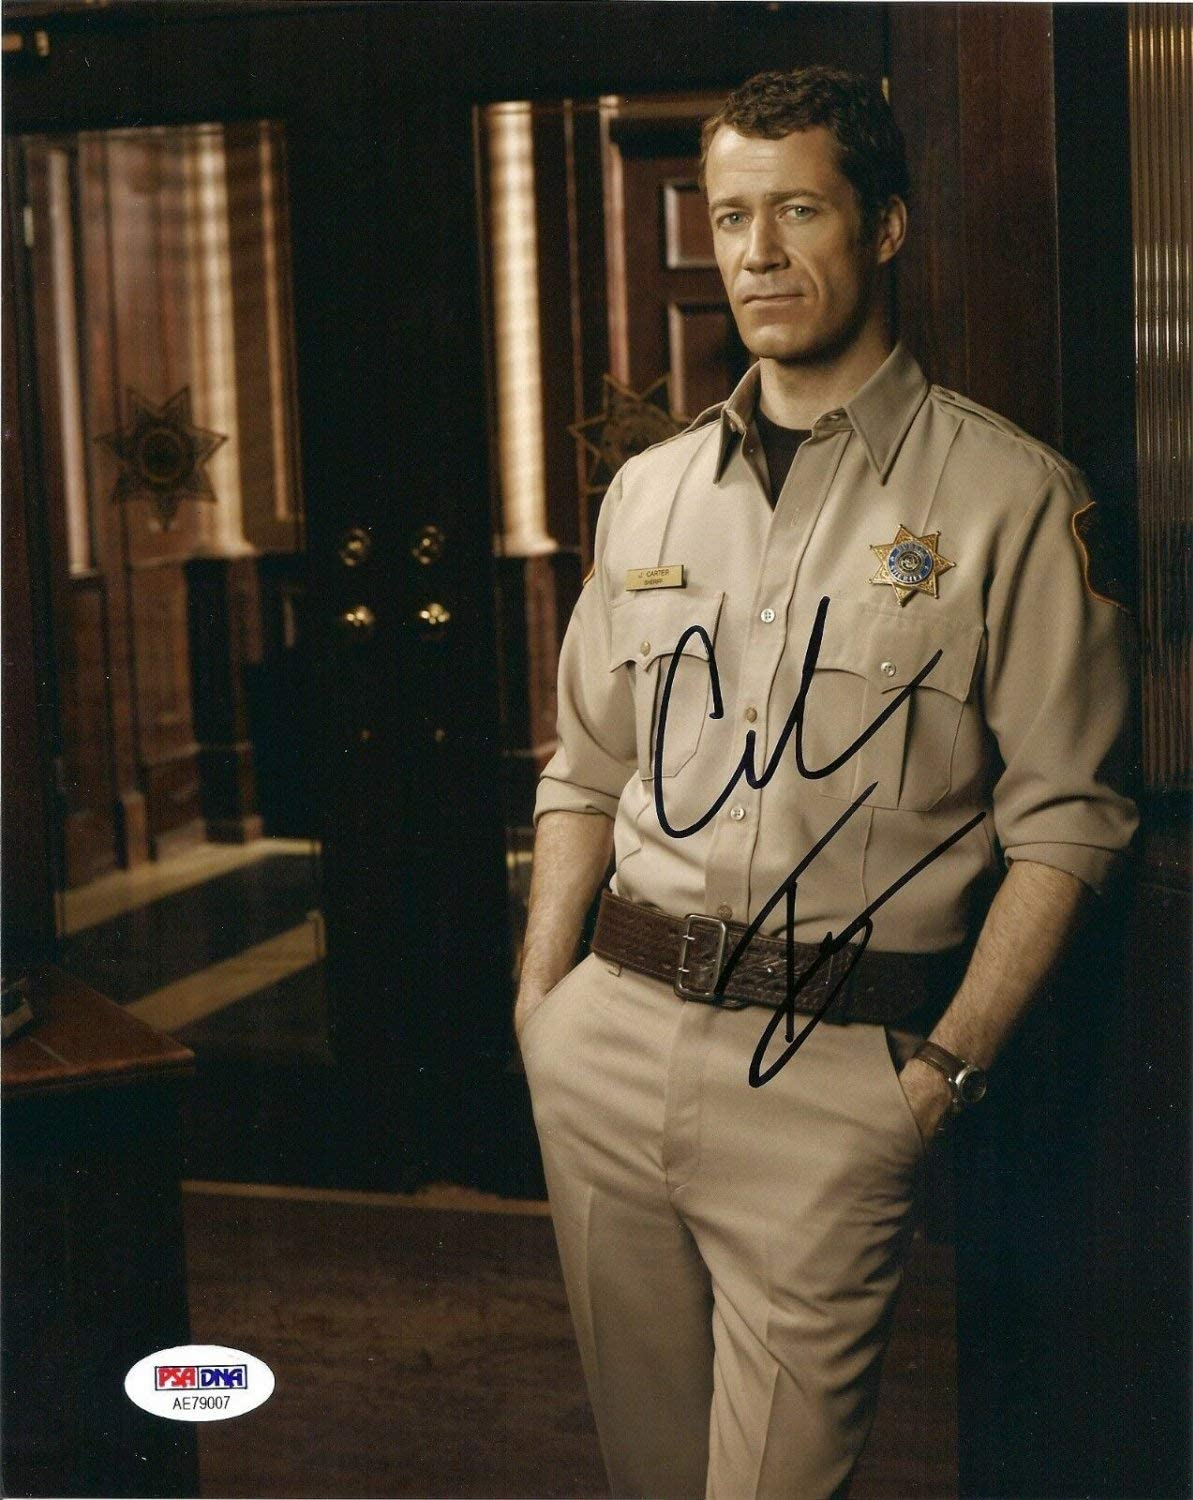 Authentic Autographed Jack Carter Colin Ferguson As 8x10 Photo Eureka Tv Show PSA DNA